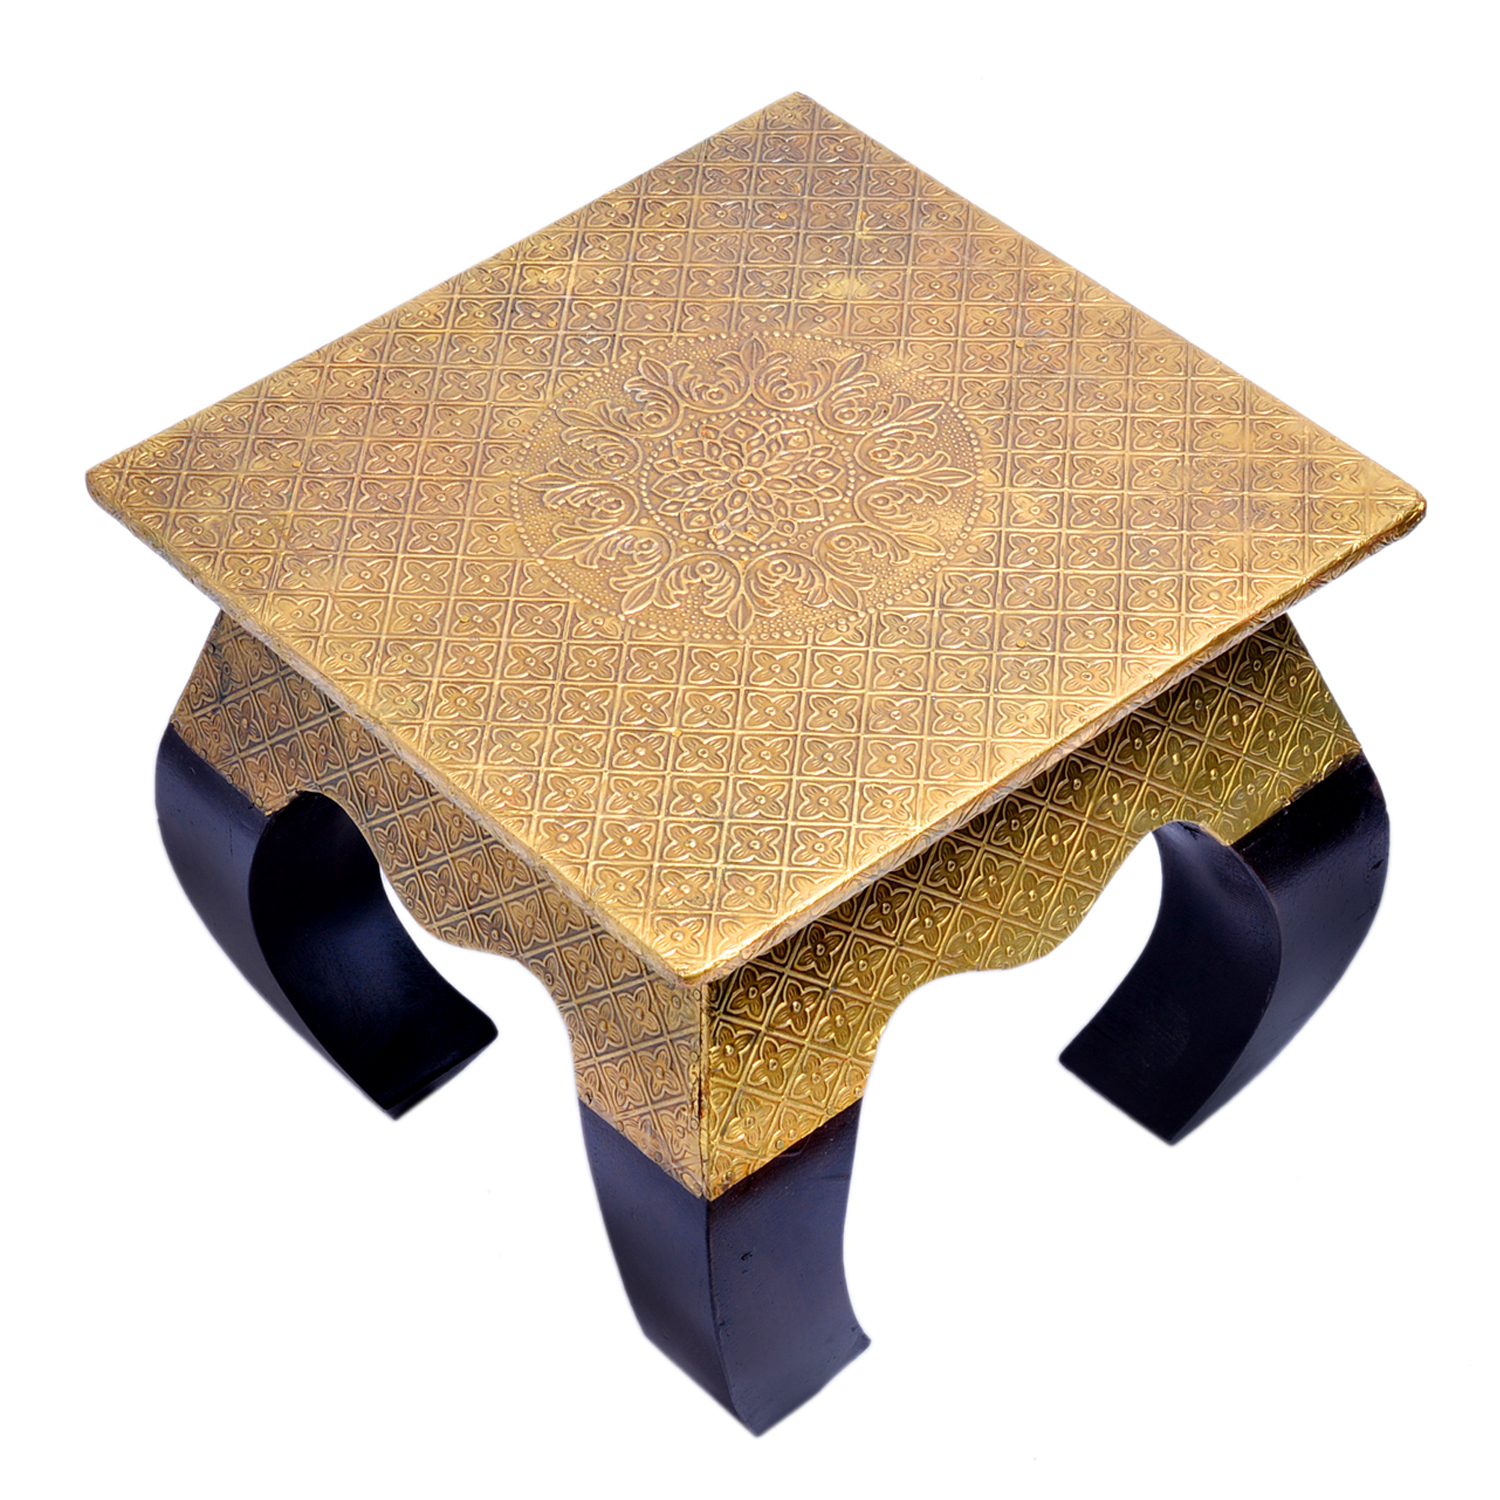 Home Decor Crafted Wooden Brass Fitted Curved Legs Stool